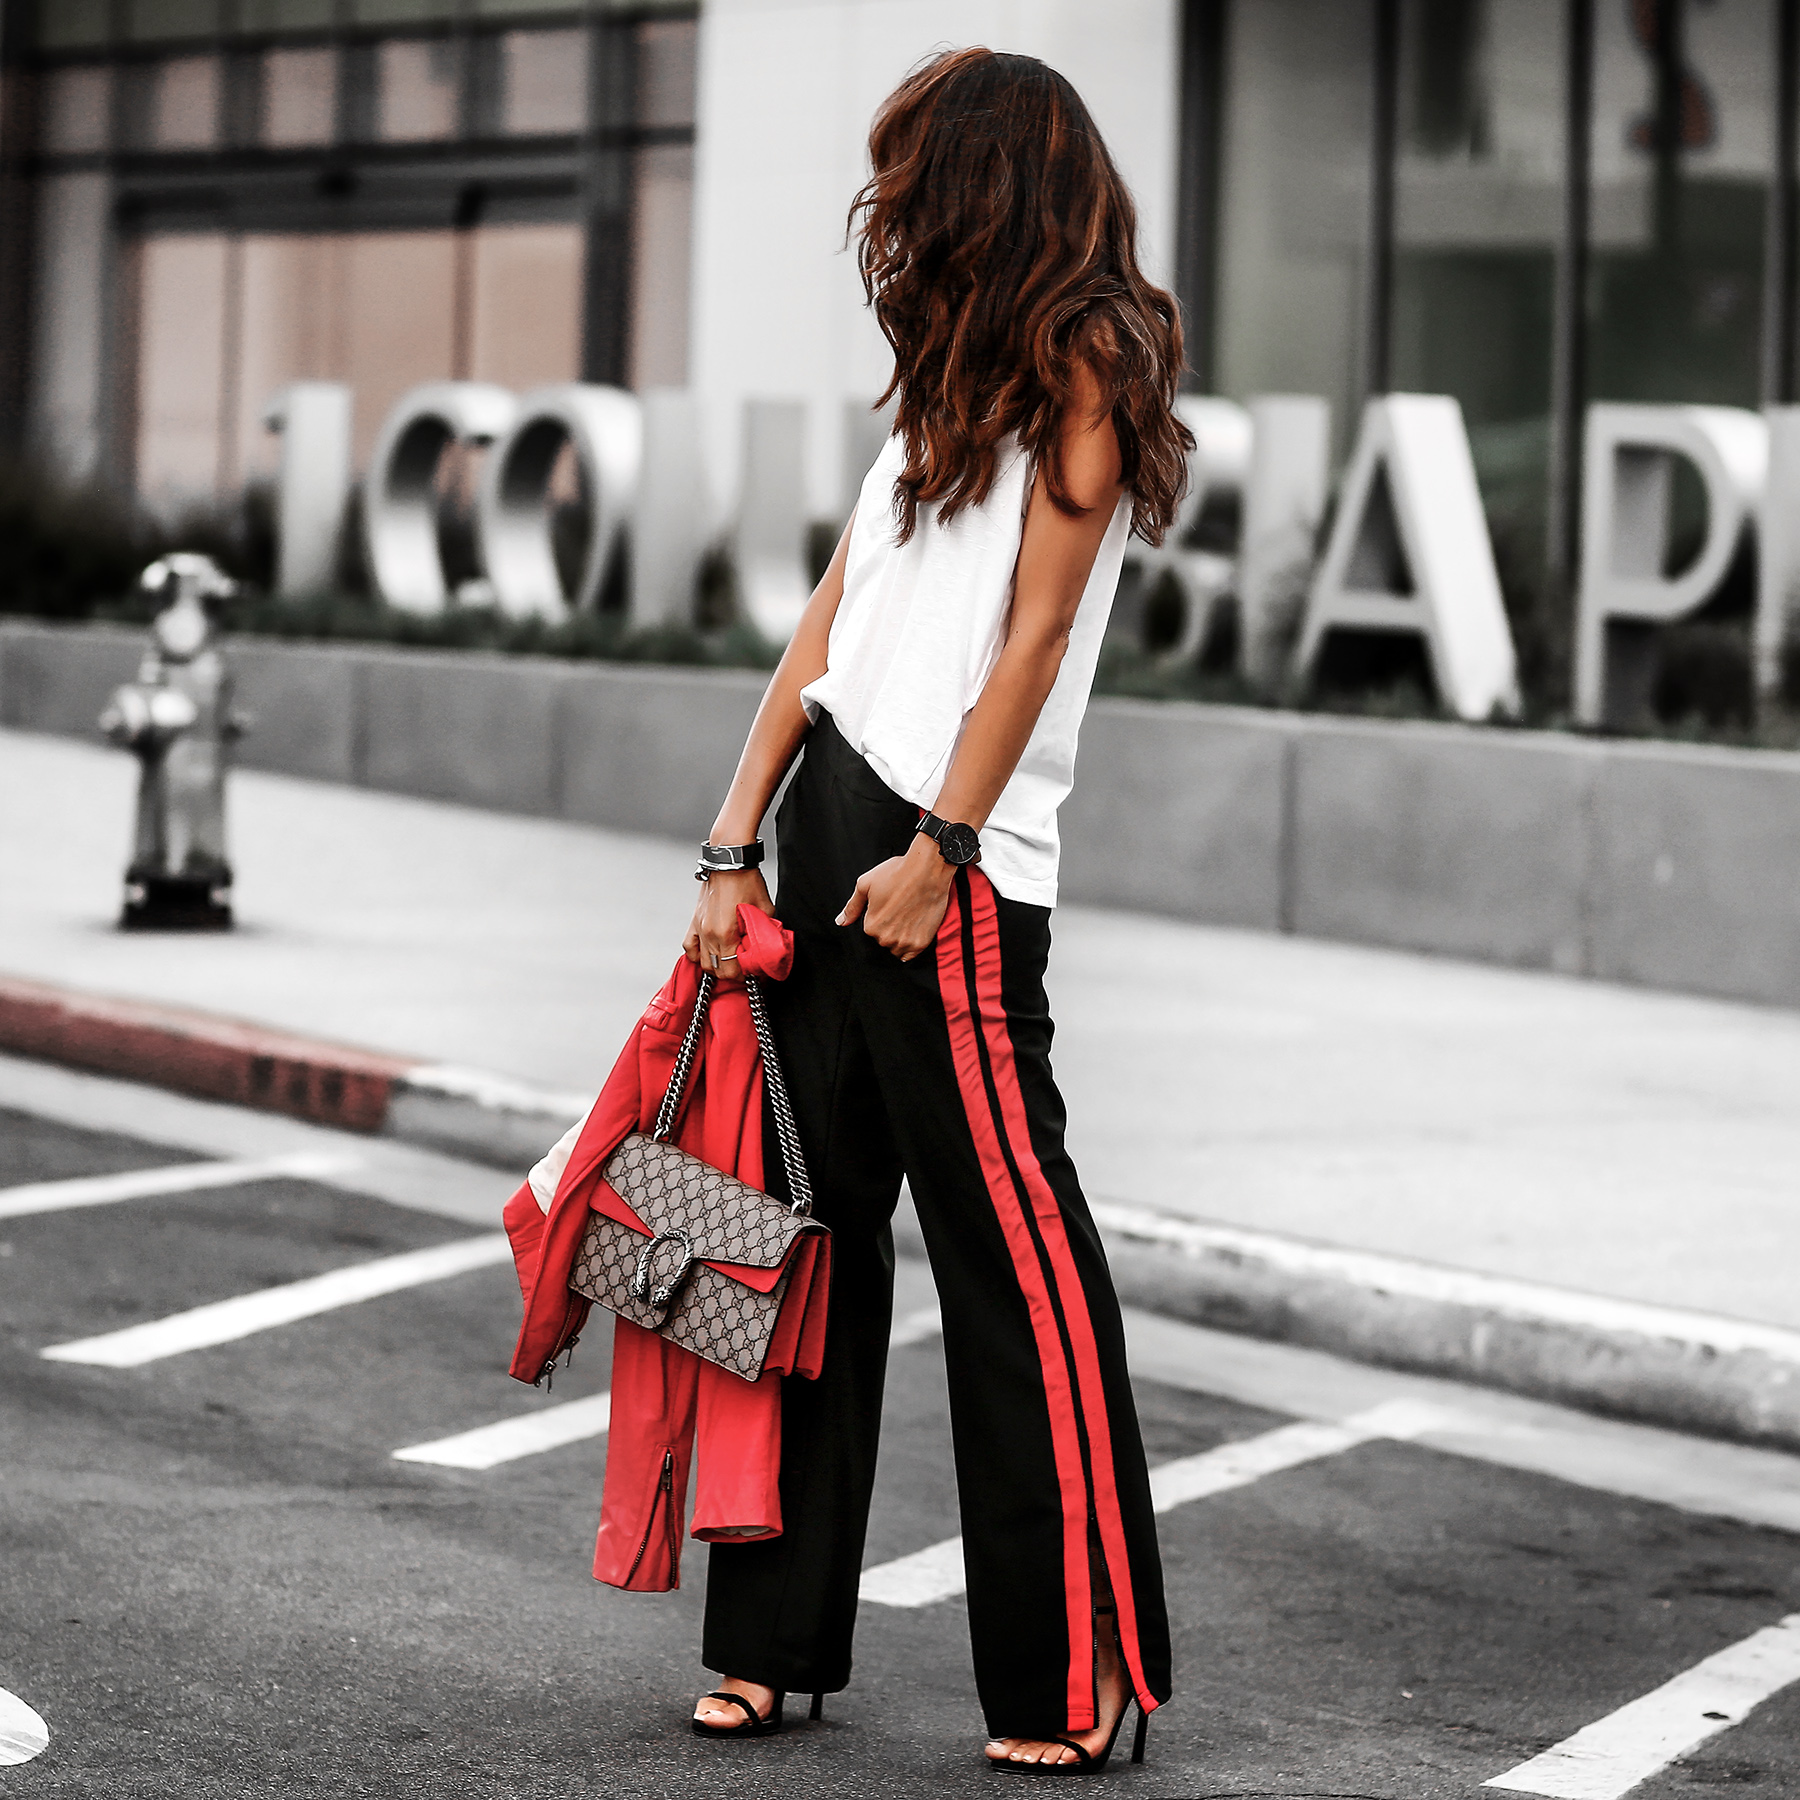 Who What Wear Target Track Pants and Gucci Dionysus Bag Streetstyle.jpg